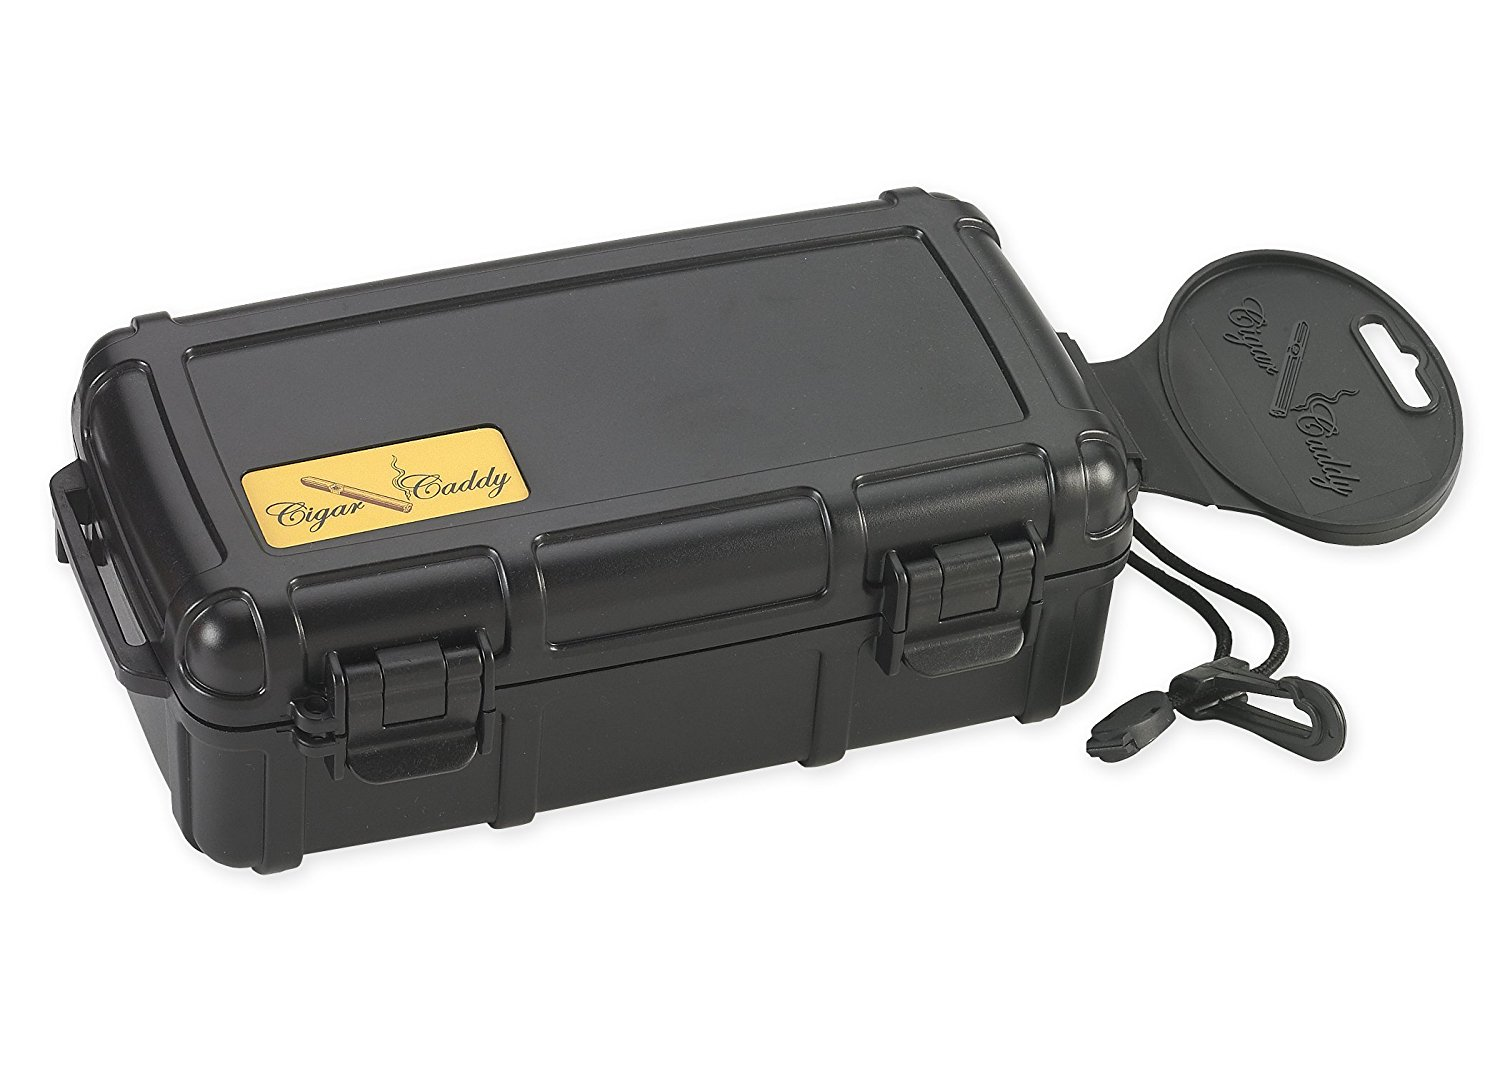 Cigar Caddy Waterproof Travel Humidor Front